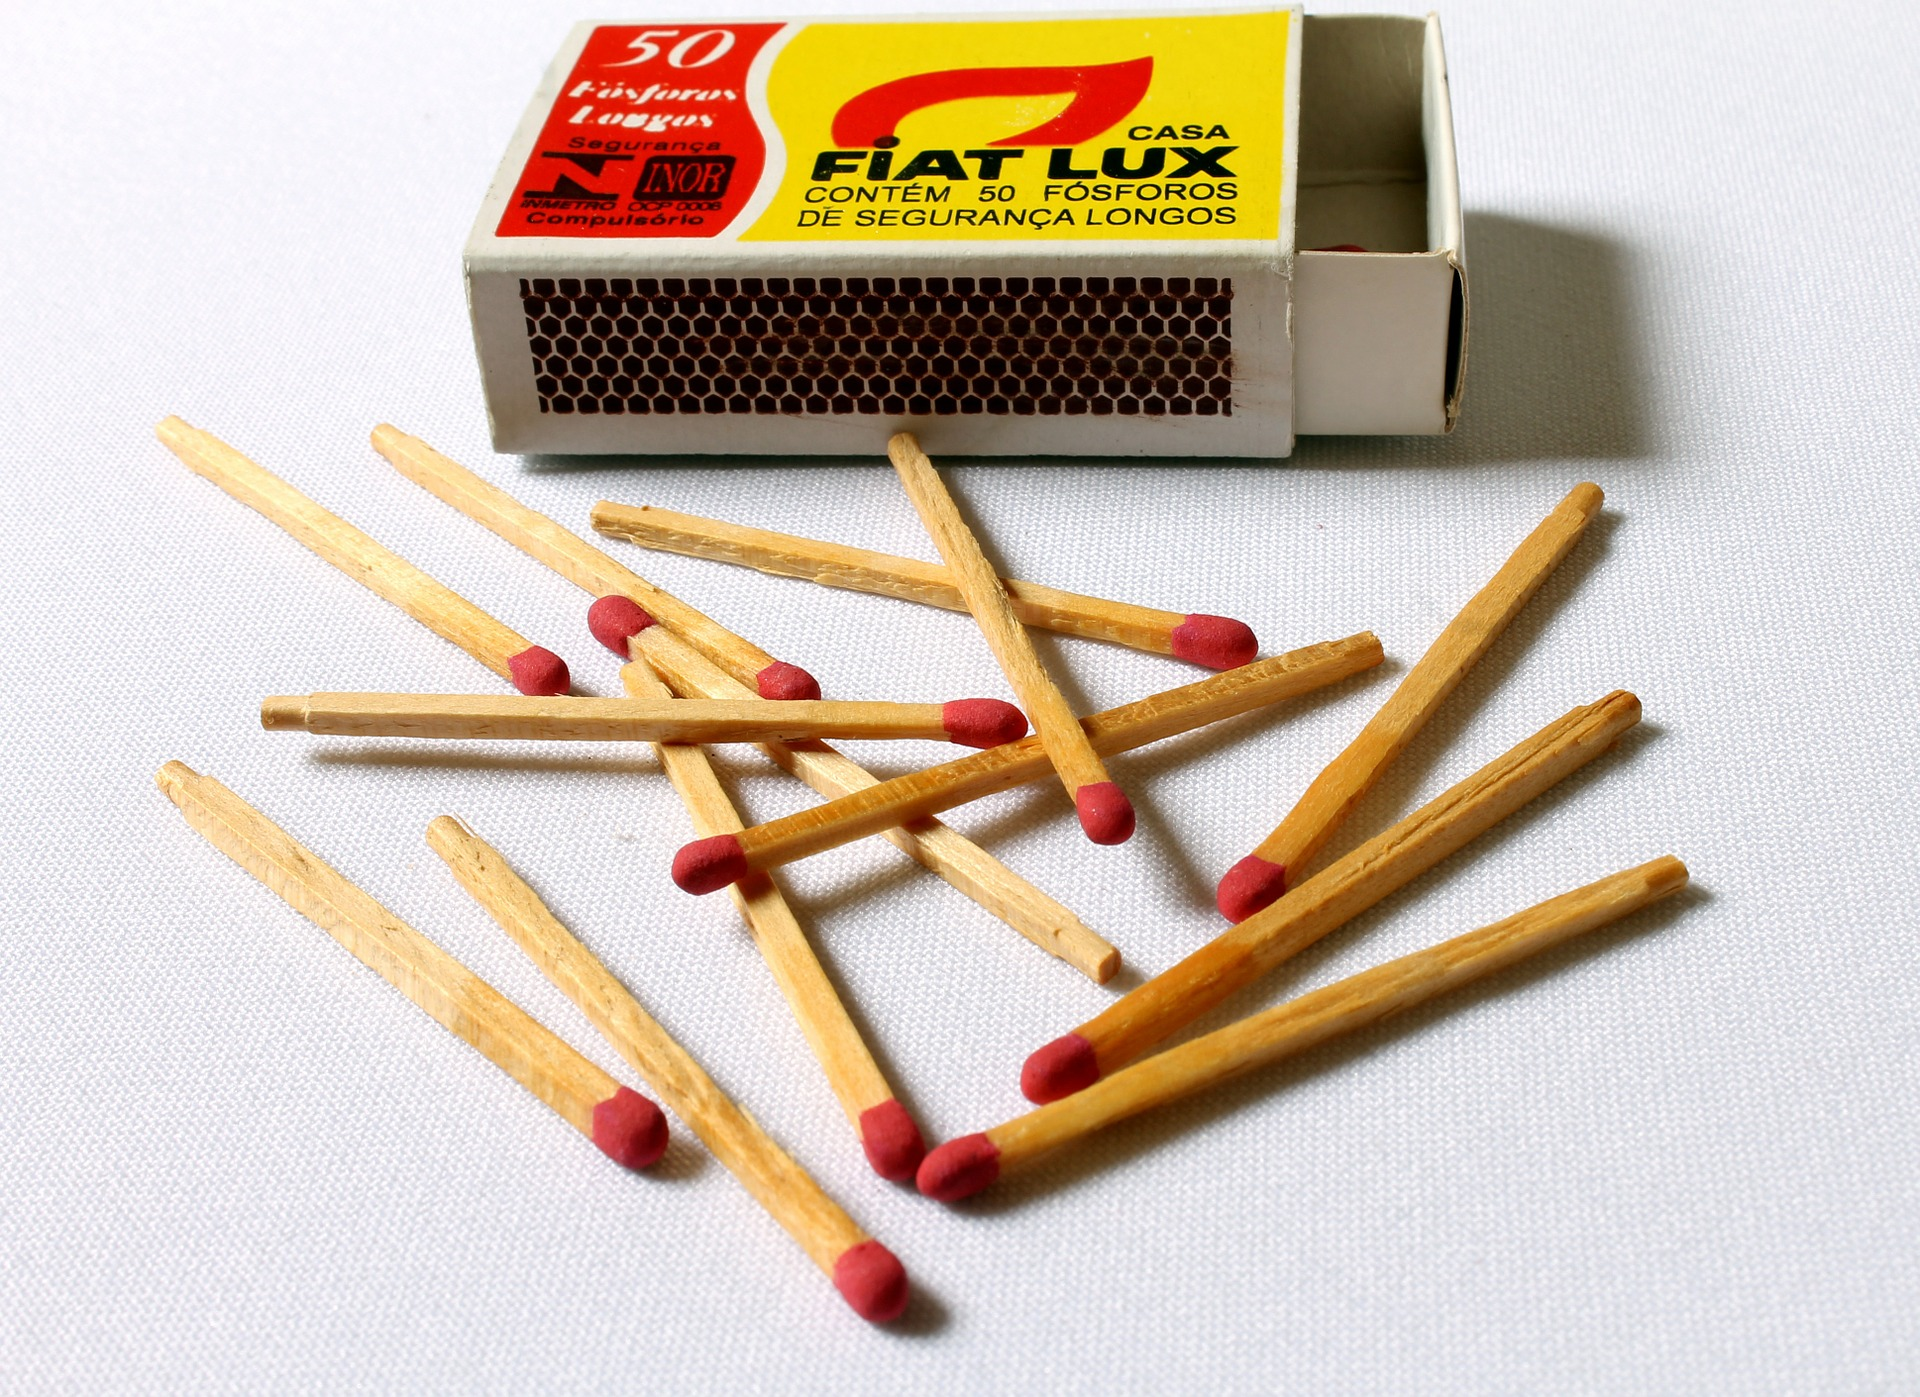 matches or lighter which